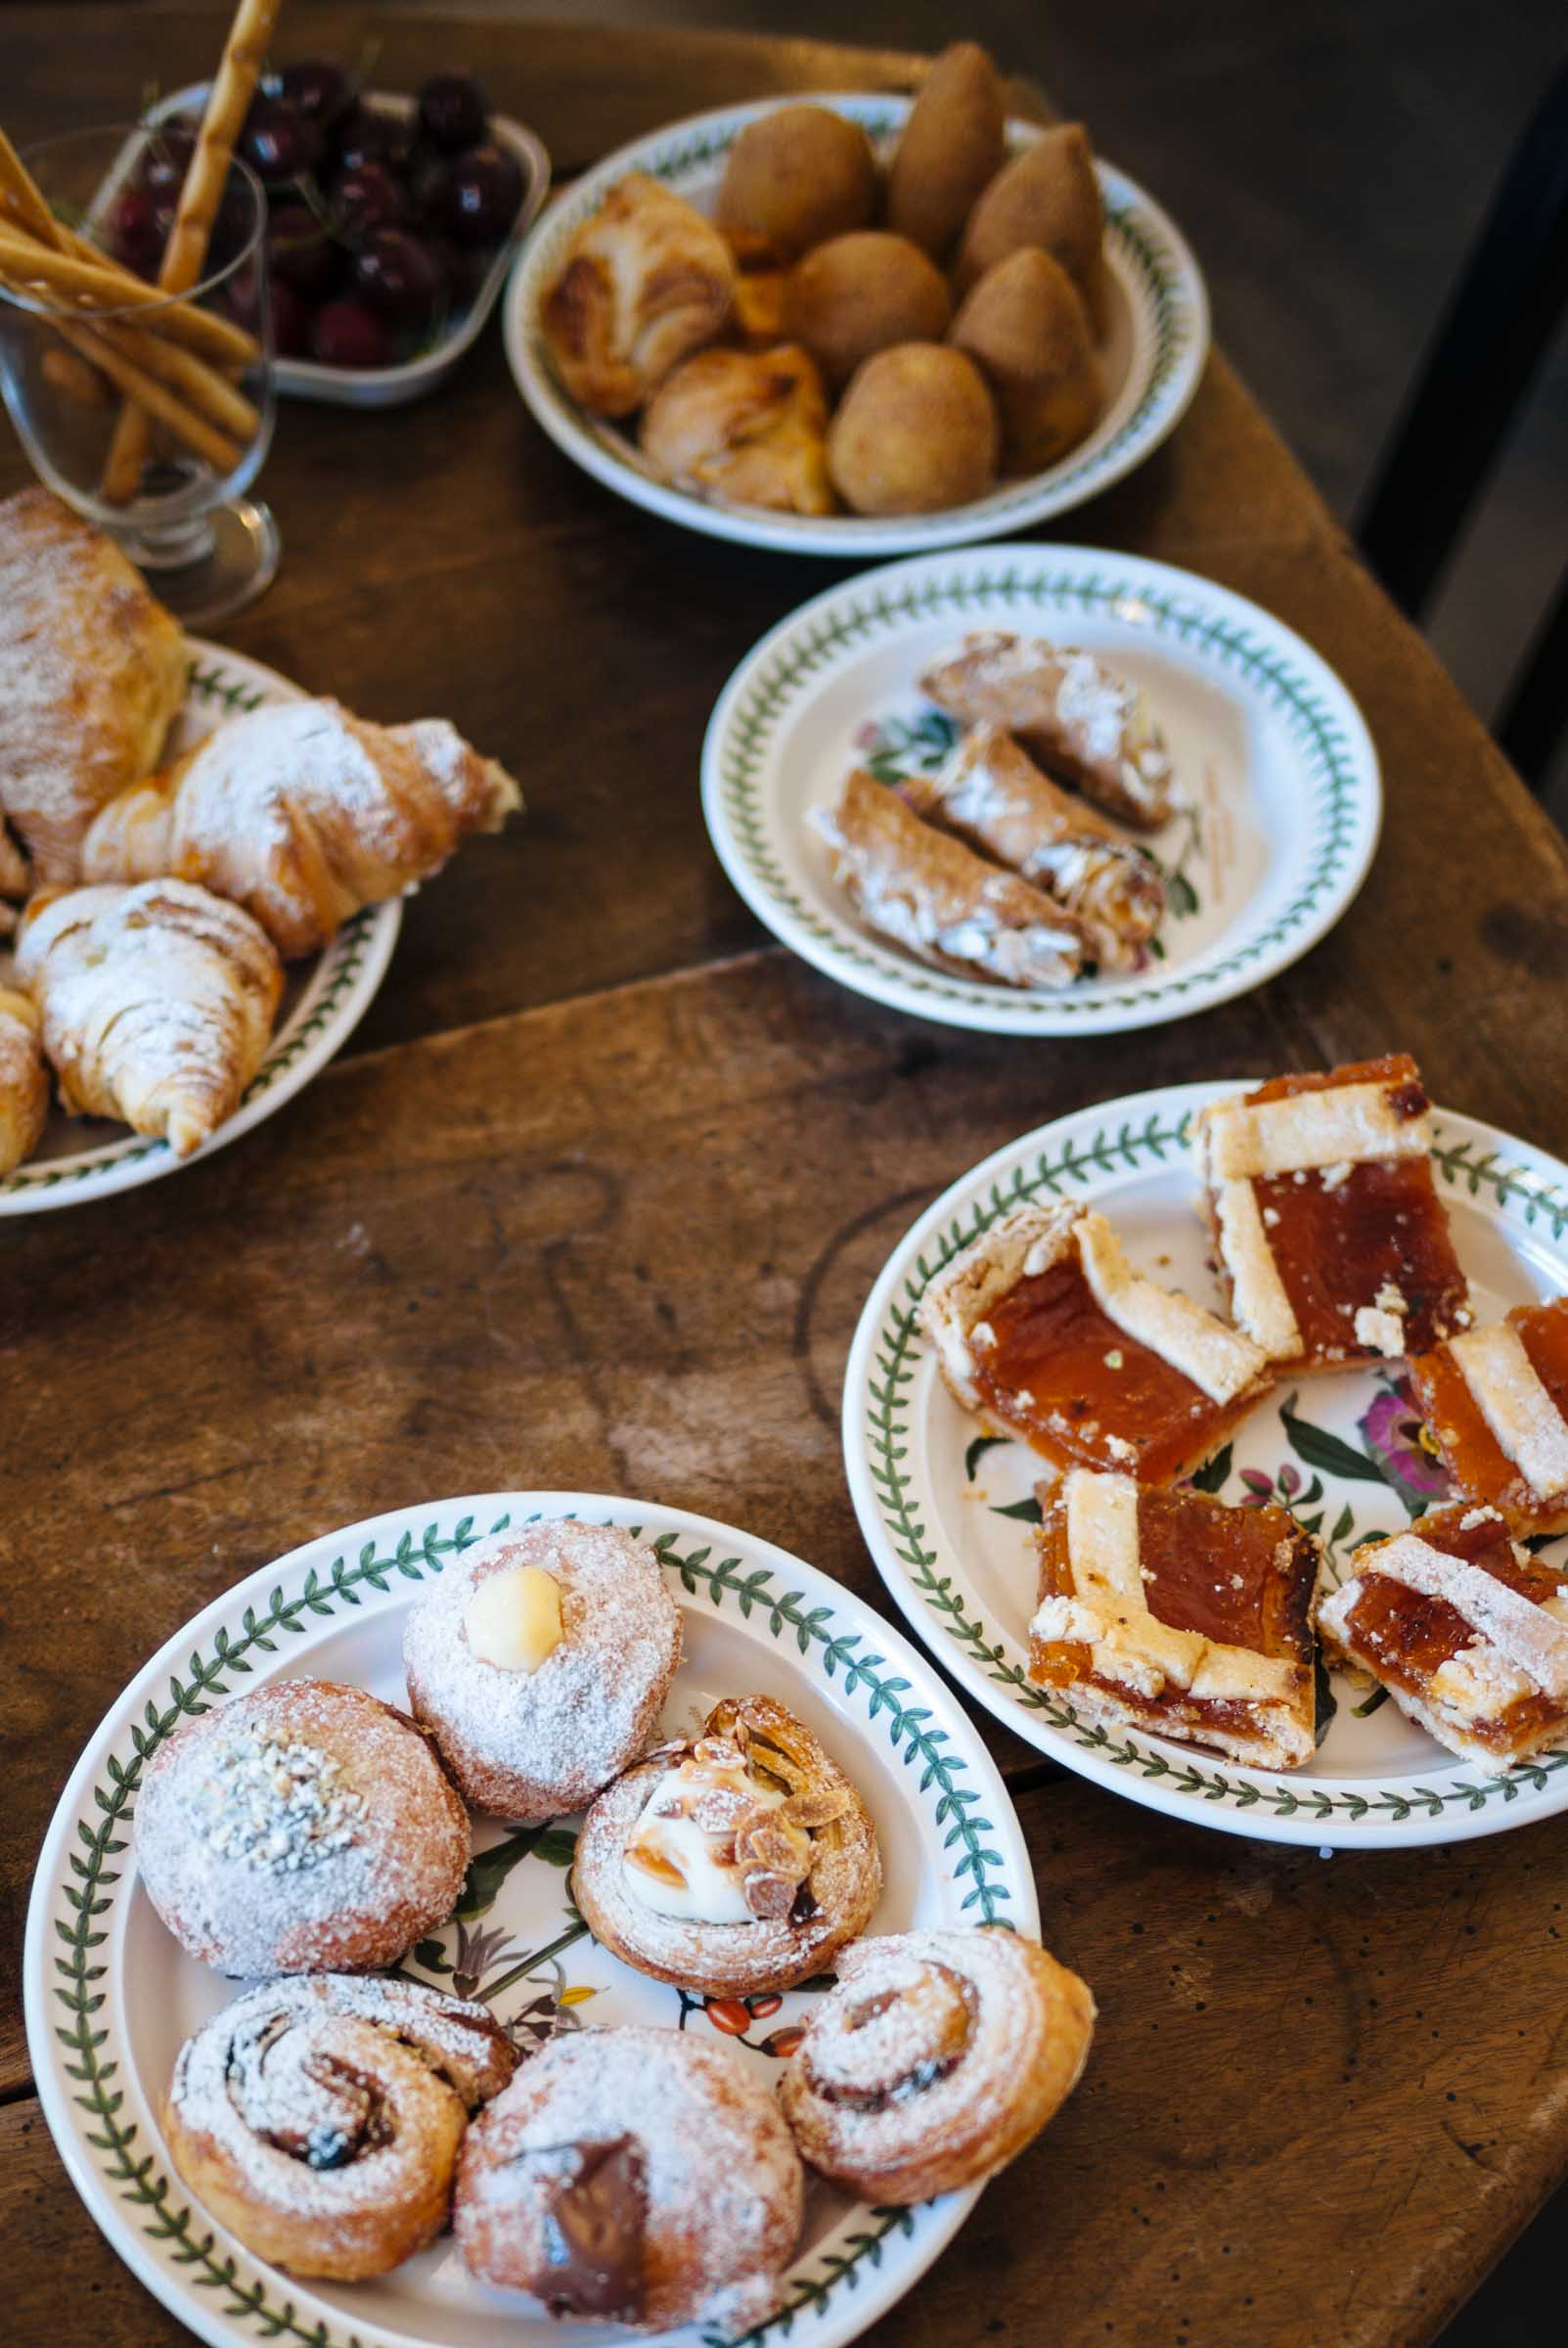 On your romantic getaway to Italy, have Sicilian breakfast of pastries and arancini